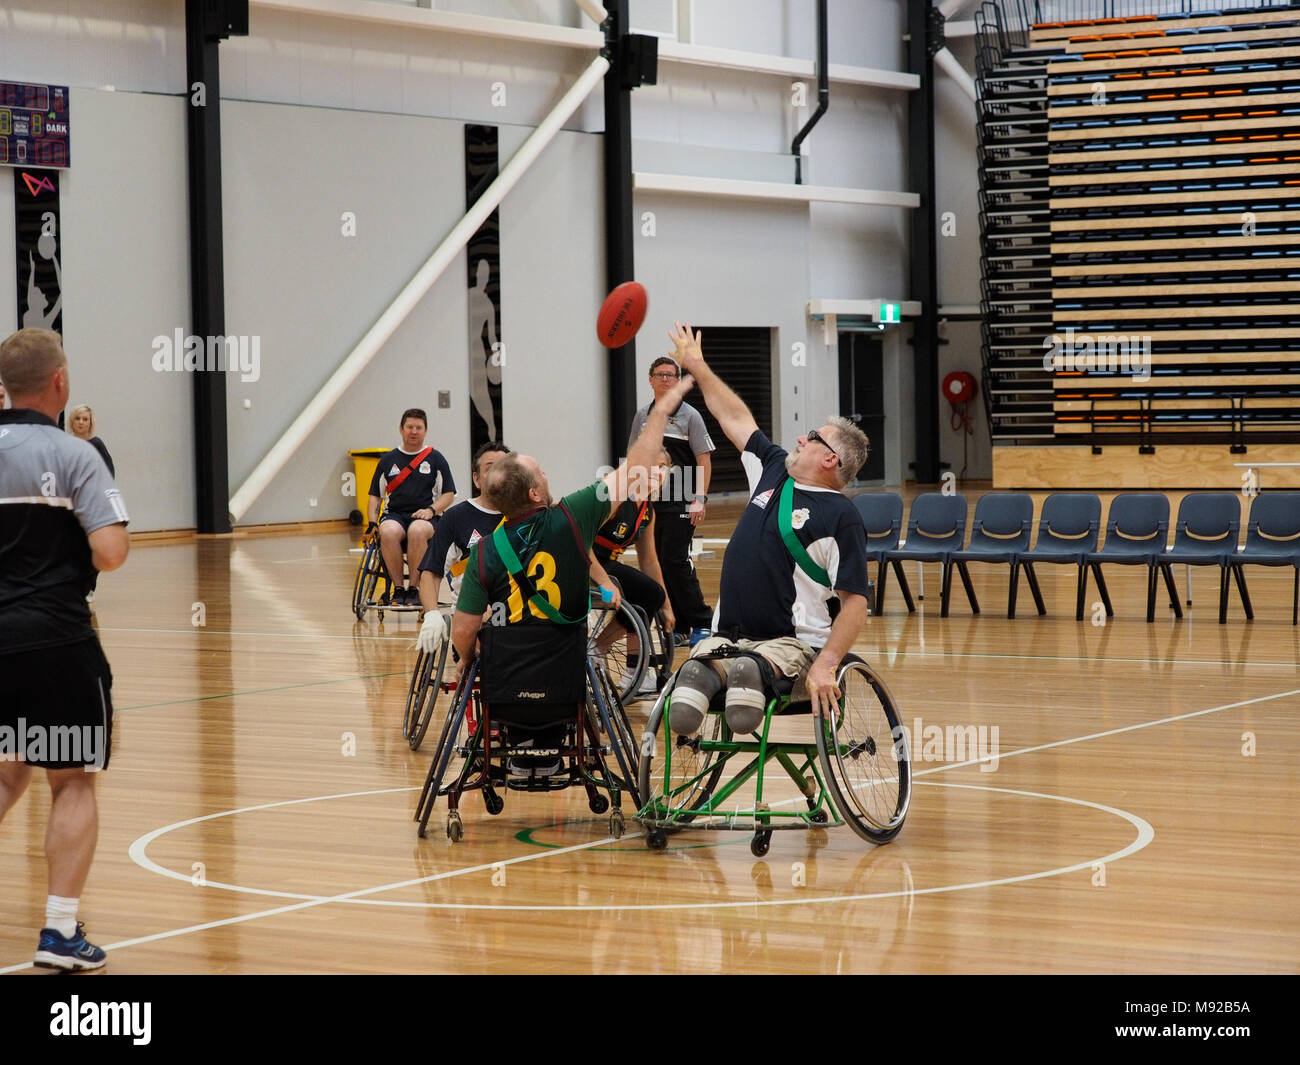 Melbourne, Australia. 22nd March 2018. 2018 Wheelchair Aussie Rules National Championship. Tasmania vs RSL Active. Credit Bill Forrester/Alamy Live News - Stock Image